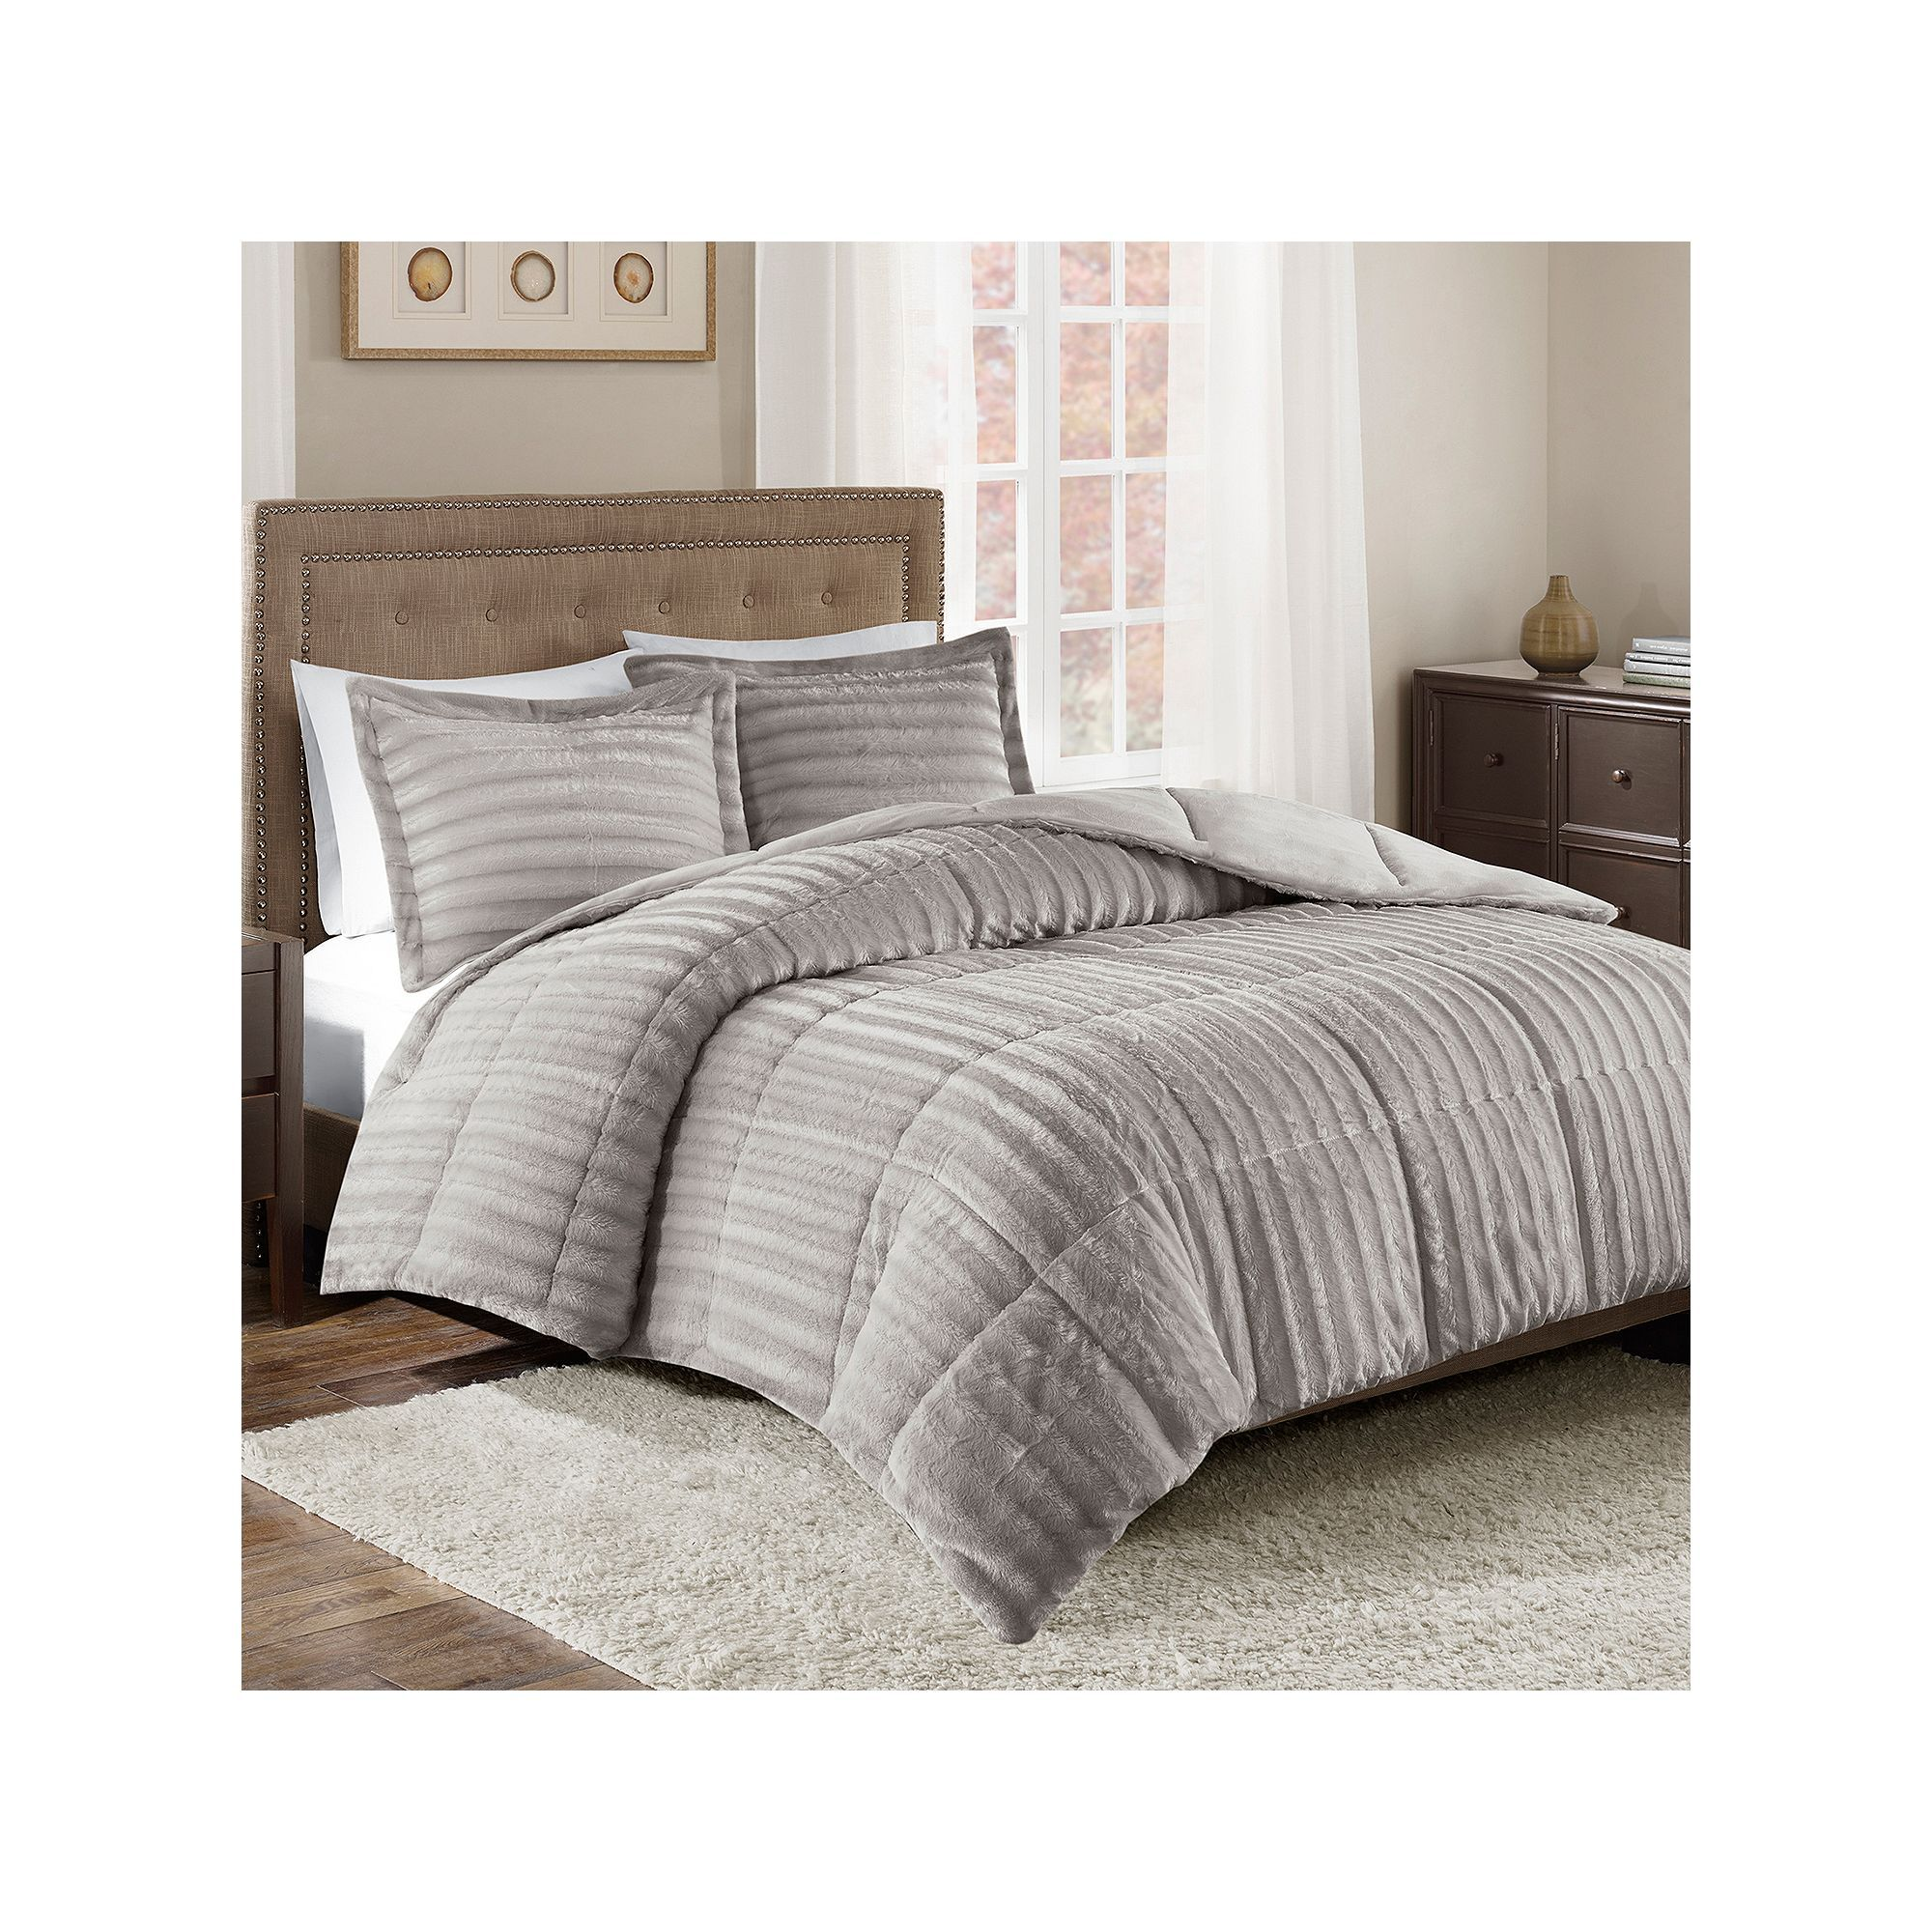 twin bed aetherair sets asli micro walmart sheet comforter sheets cal co size suede bedding king